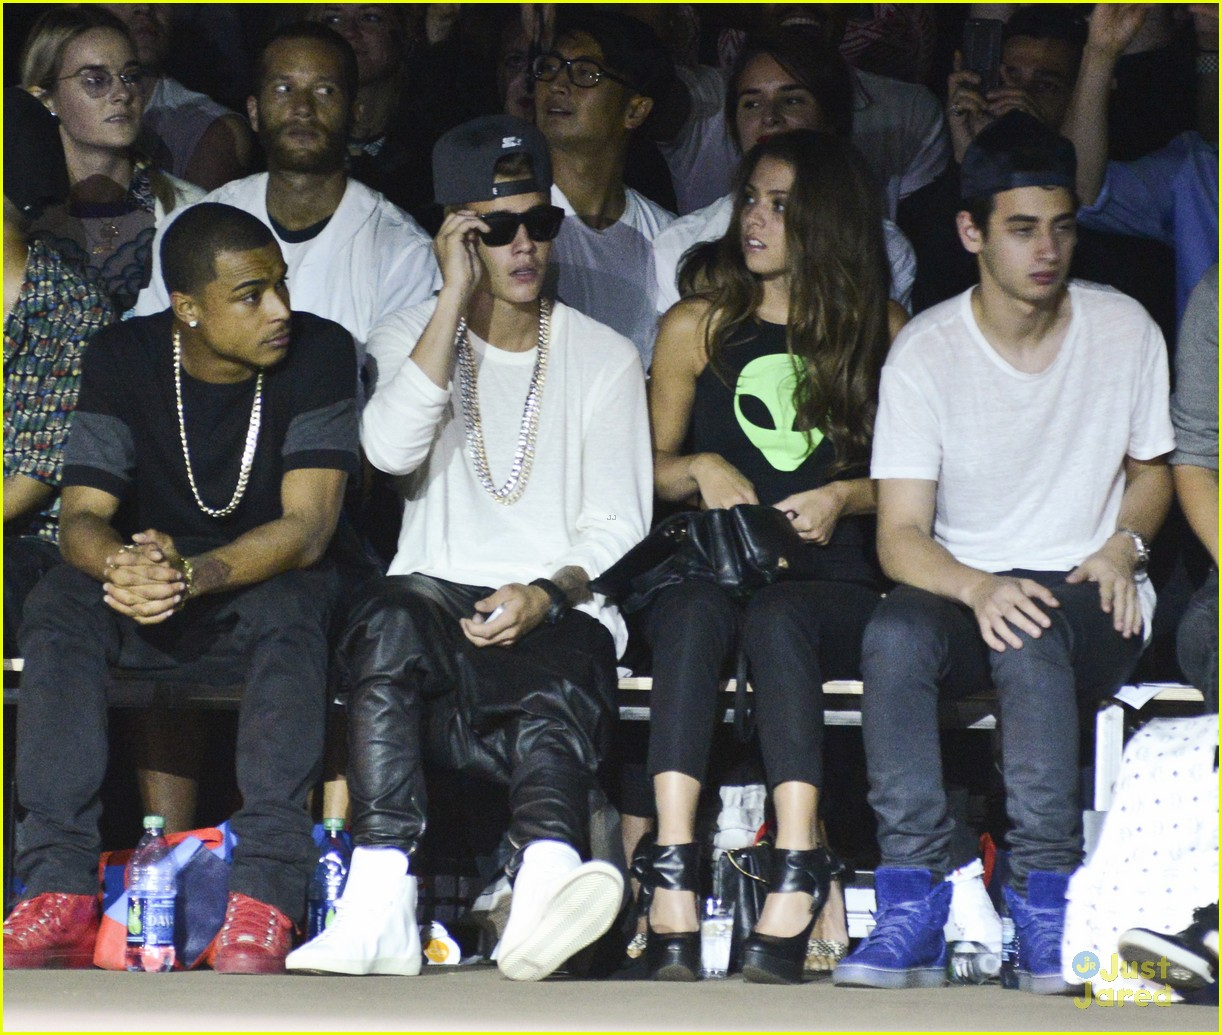 Justin Bieber Fashion Week Opening Ceremony Photo 595711 Photo Gallery Just Jared Jr